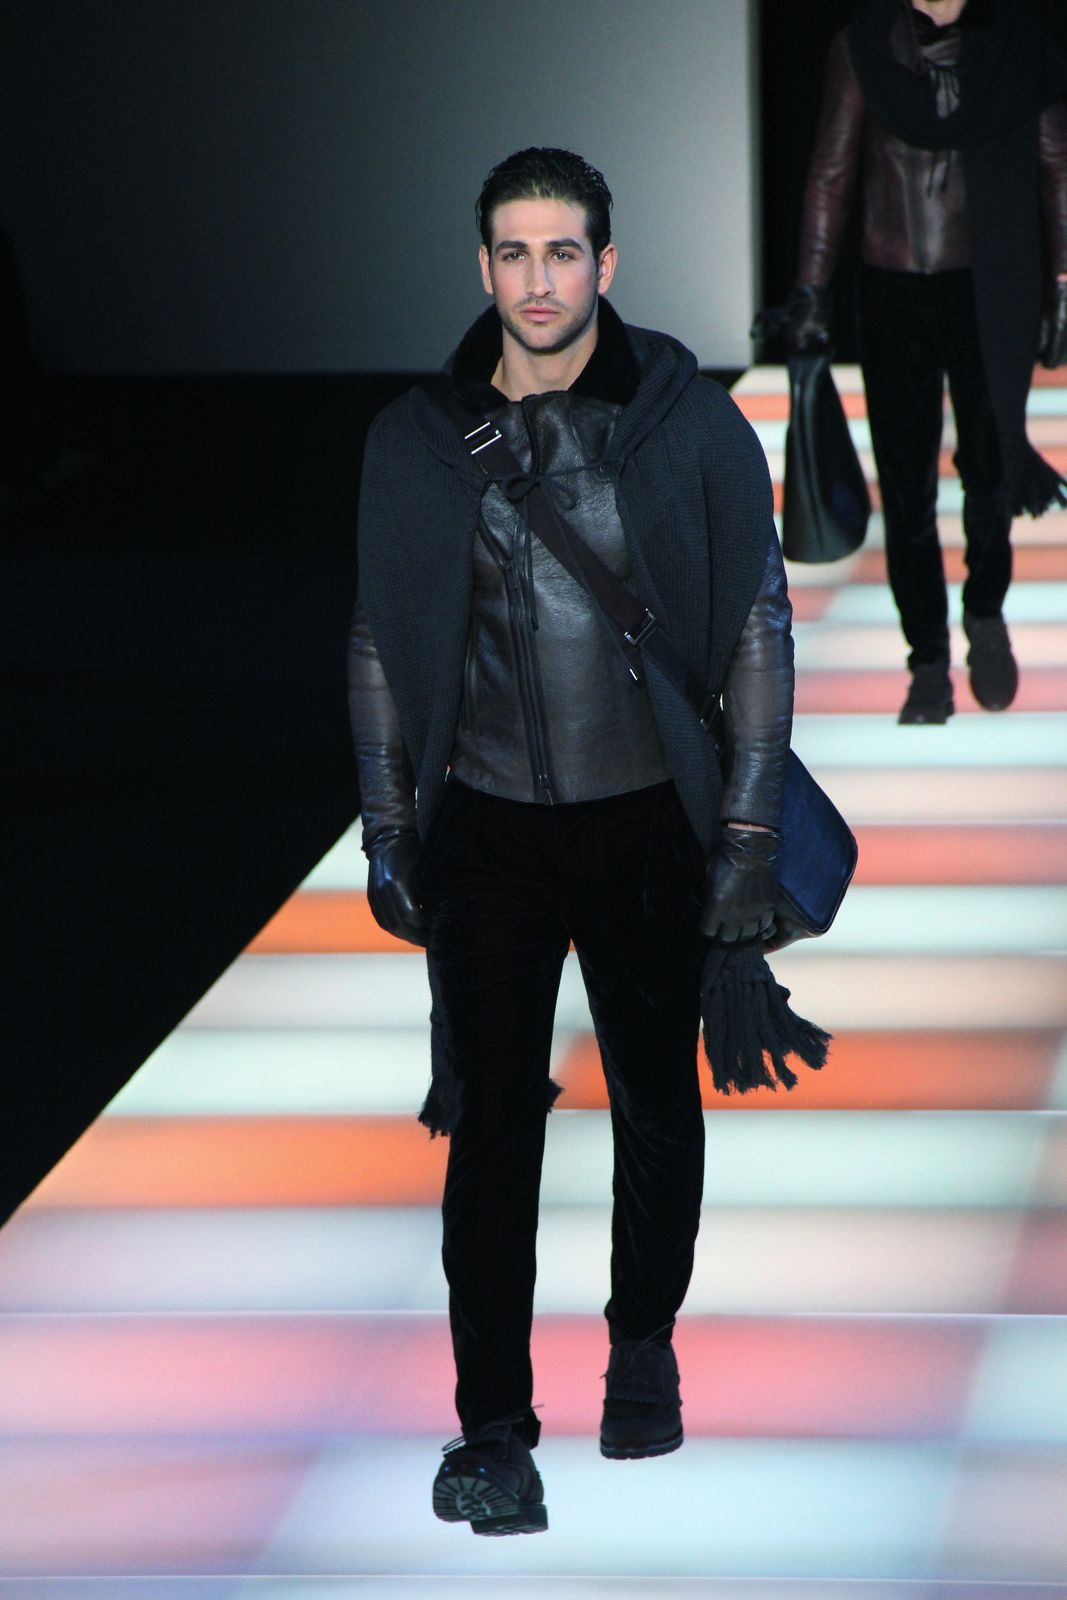 Emporio Armani Fall Winter 2012-13 Men's Collection Milano Fashion Week